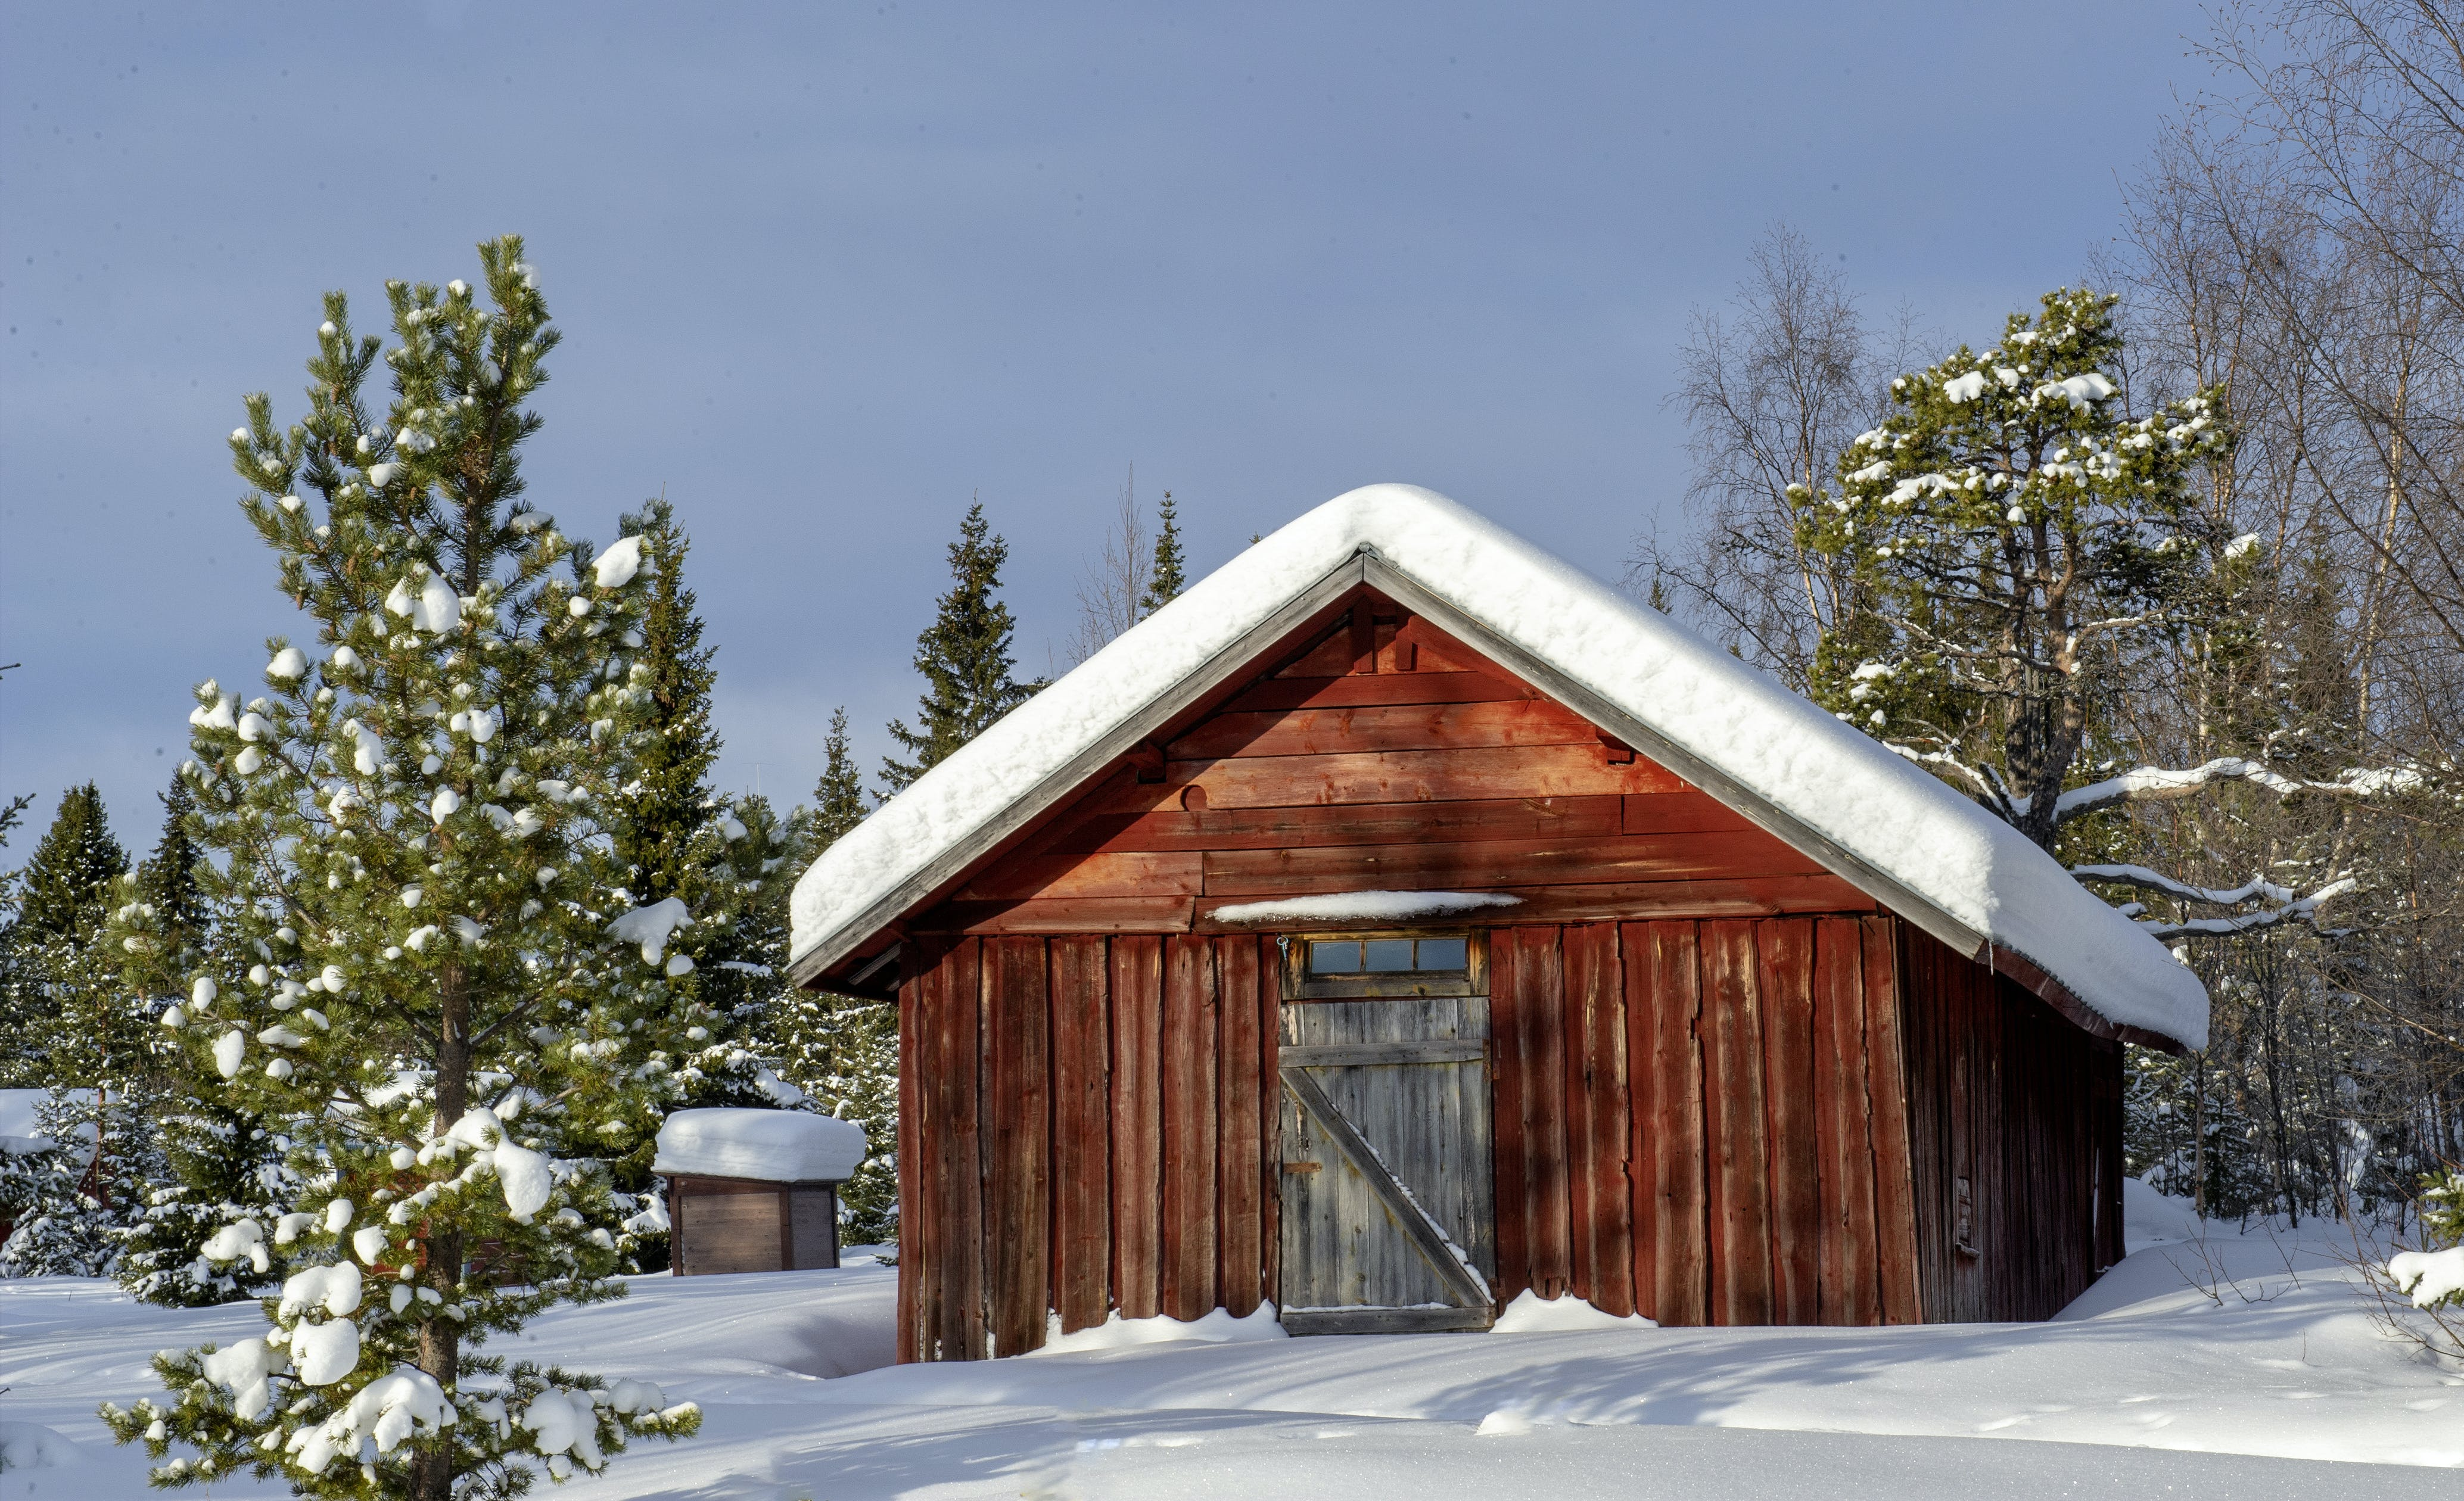 Wooden Shed Surrounded by Trees